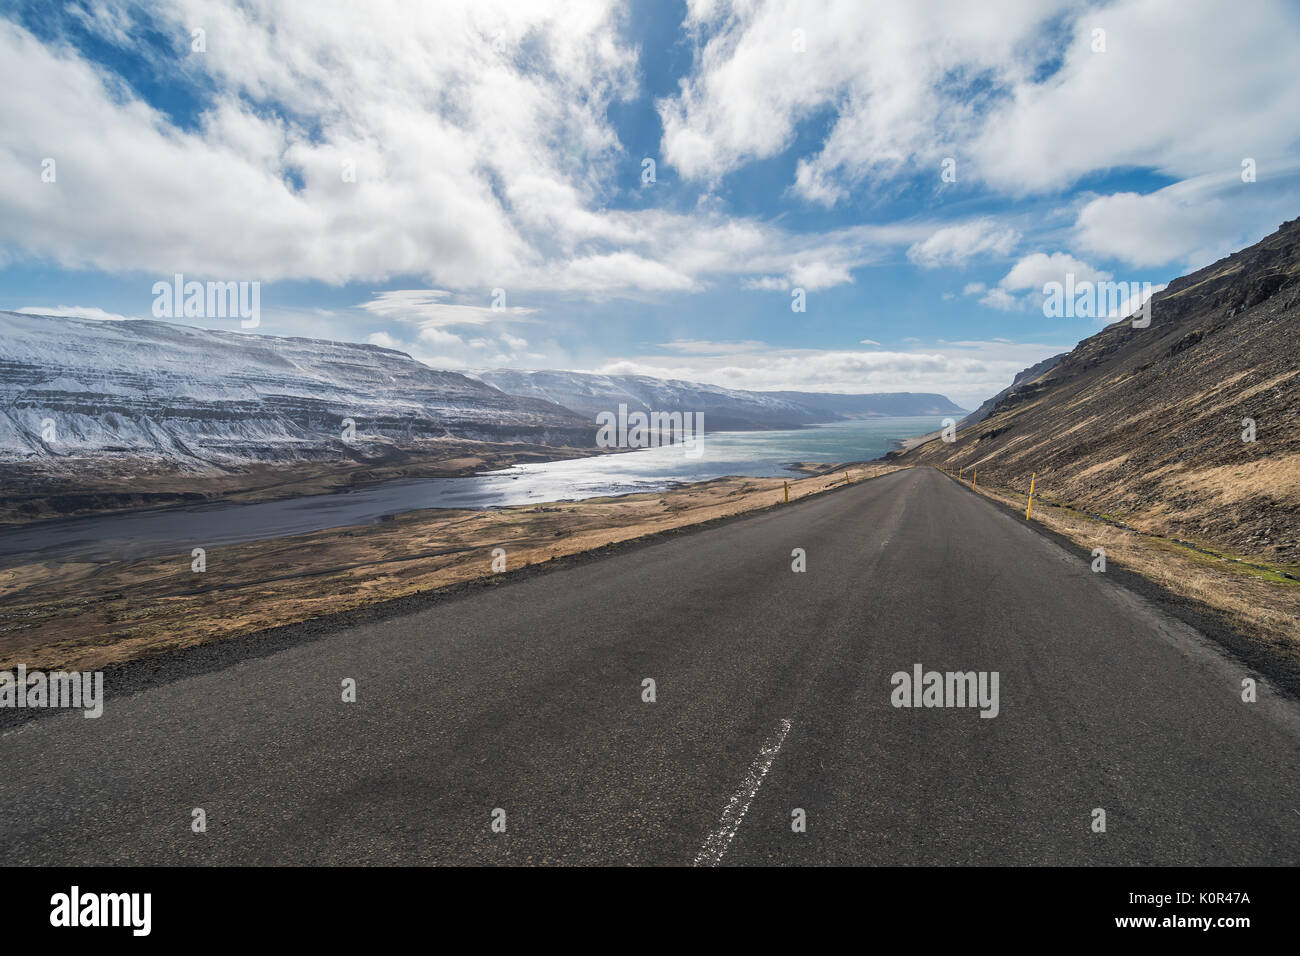 Looking down the road at dramatic scenery, isolation, Kollafjordur, Westfjords, Iceland - Stock Image